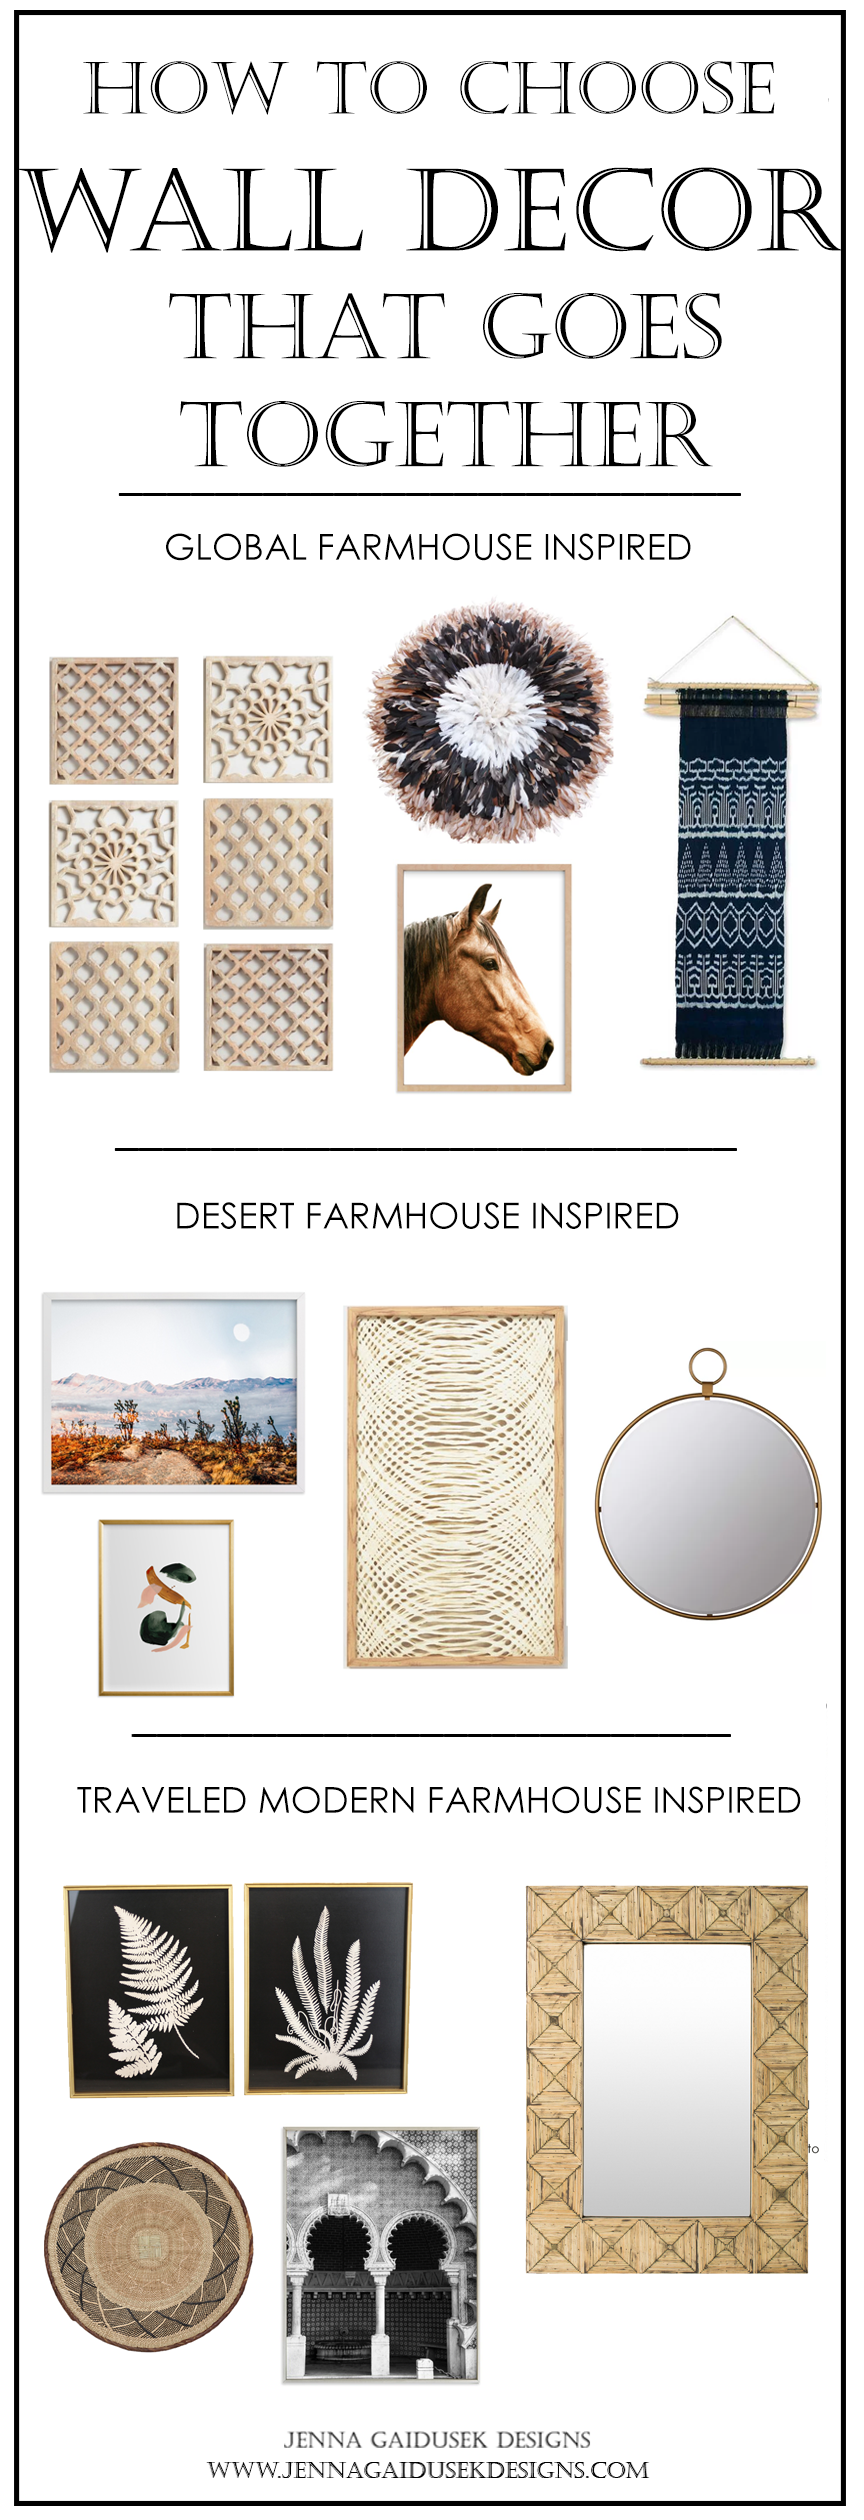 Desert Farmhouse Inspired  Checkout this modern Desert Farmhouse inspired wall decor arrangement for your living room, dining room or bedroom! #howtopickwalldecor #modernfarmhouse #bohofarmhouse #howihome #coastal #artwork